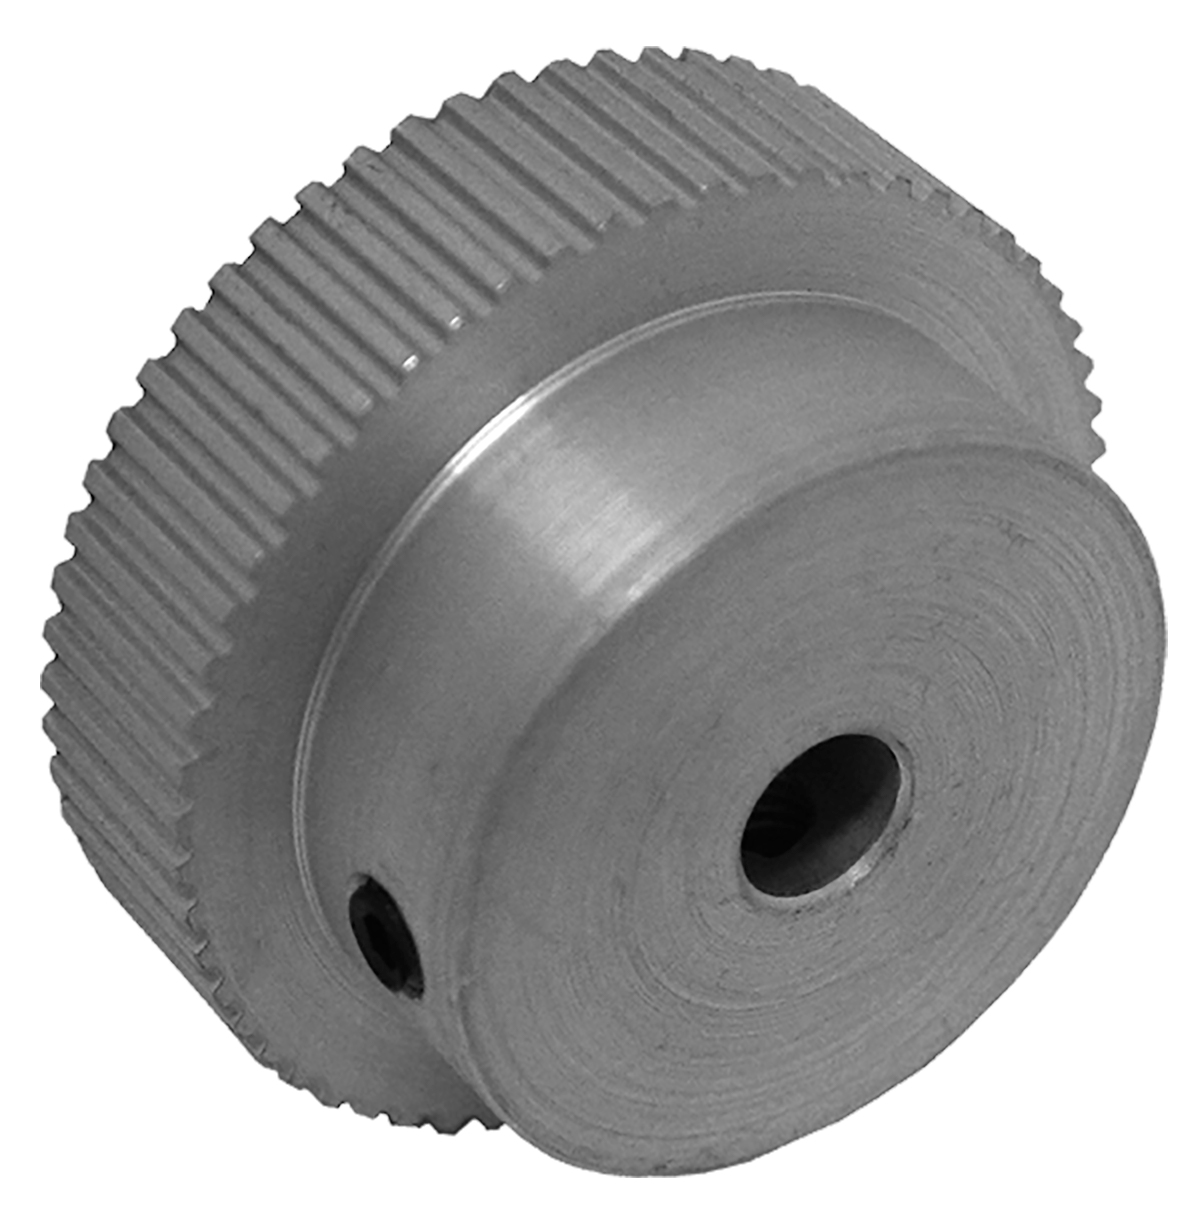 60MP025-6A3 - Aluminum Imperial Pitch Pulleys